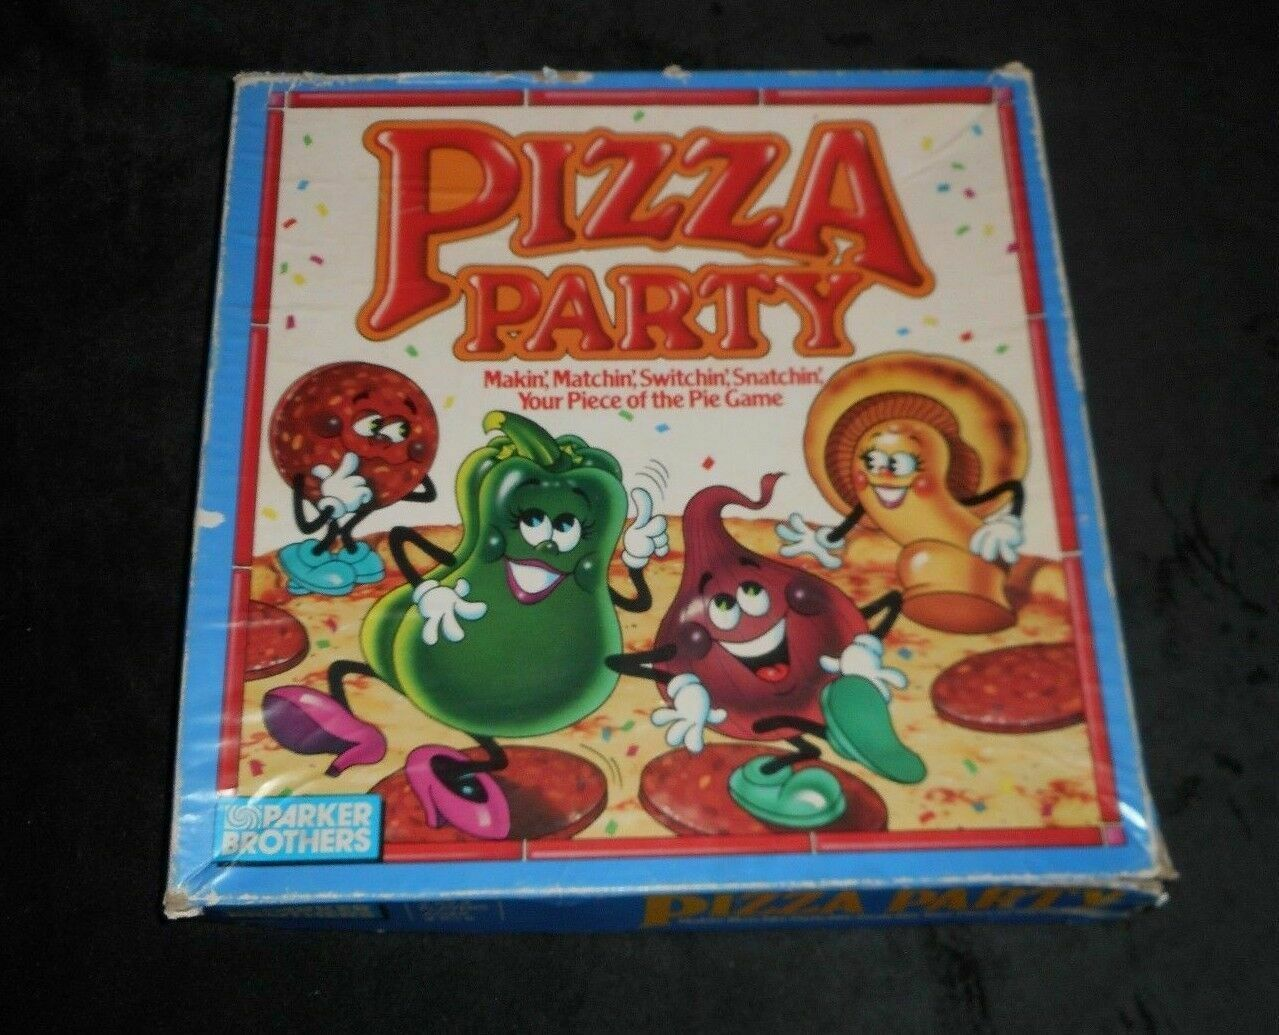 VINTAGE 1987 PIZZA PARTY BOARD GAME REPLACEMENT PART PIECE YELLOW SWITCH TOKEN image 3